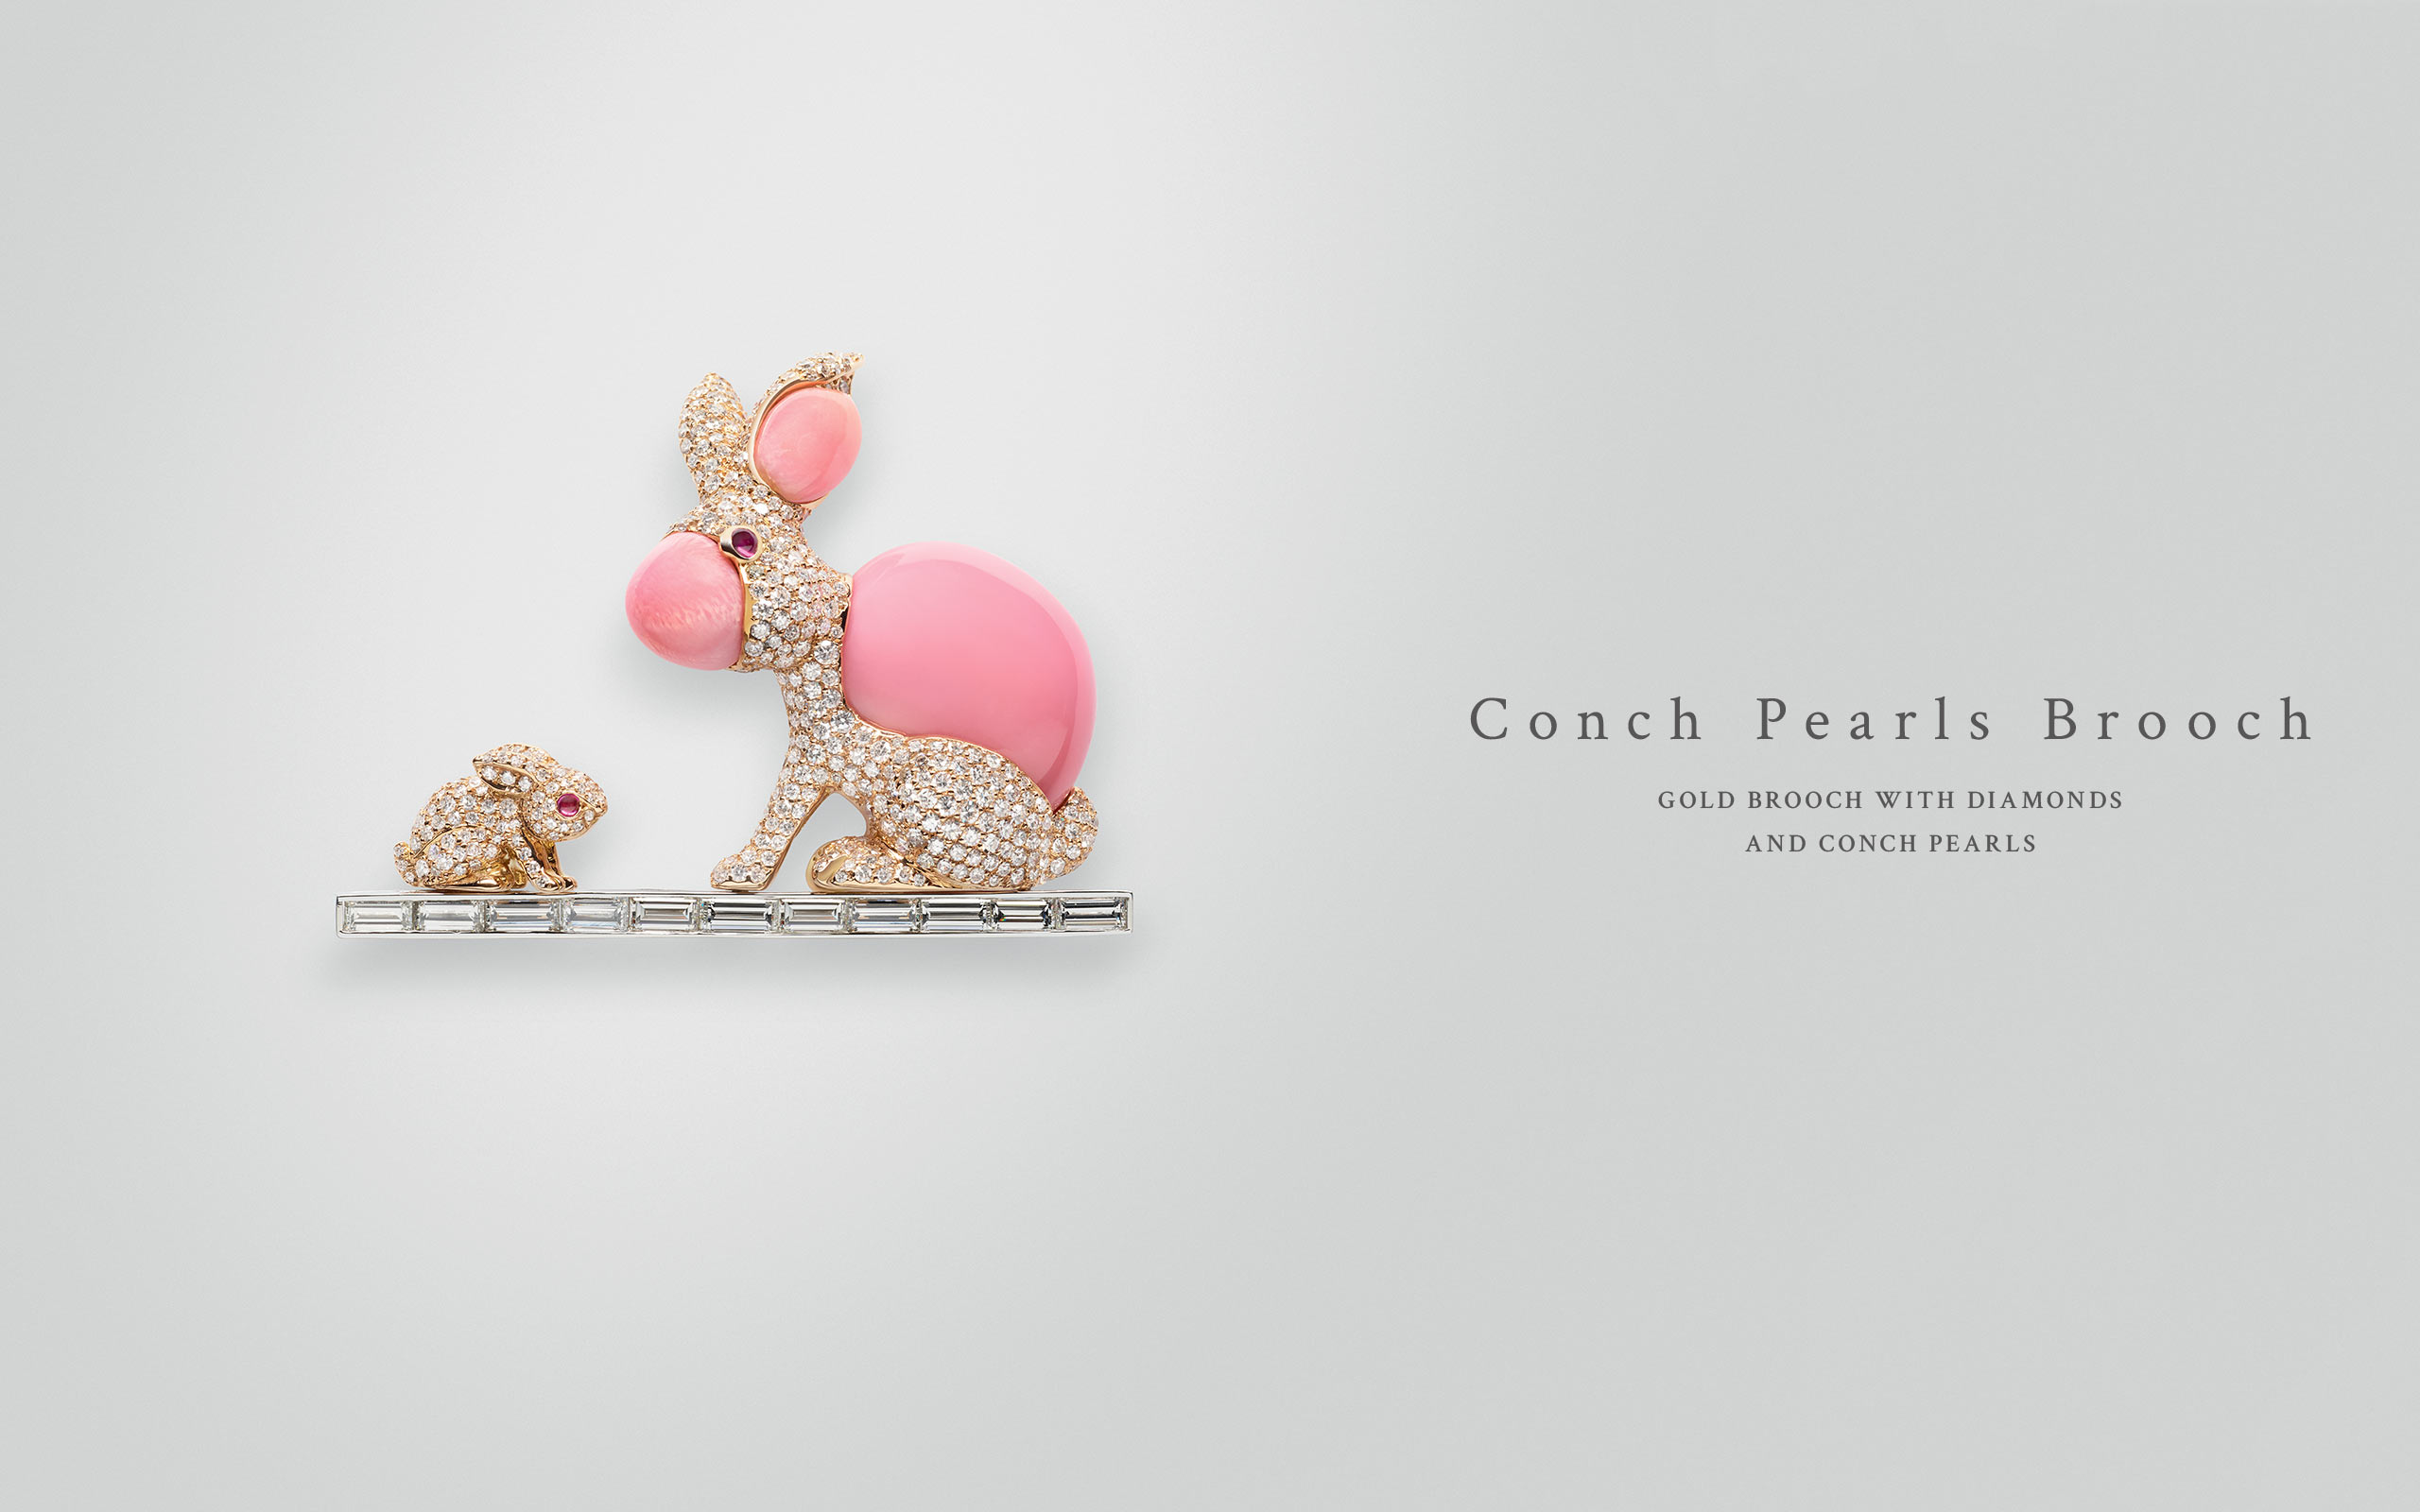 Conch Pearls Brooch 11 | Maria Gaspari